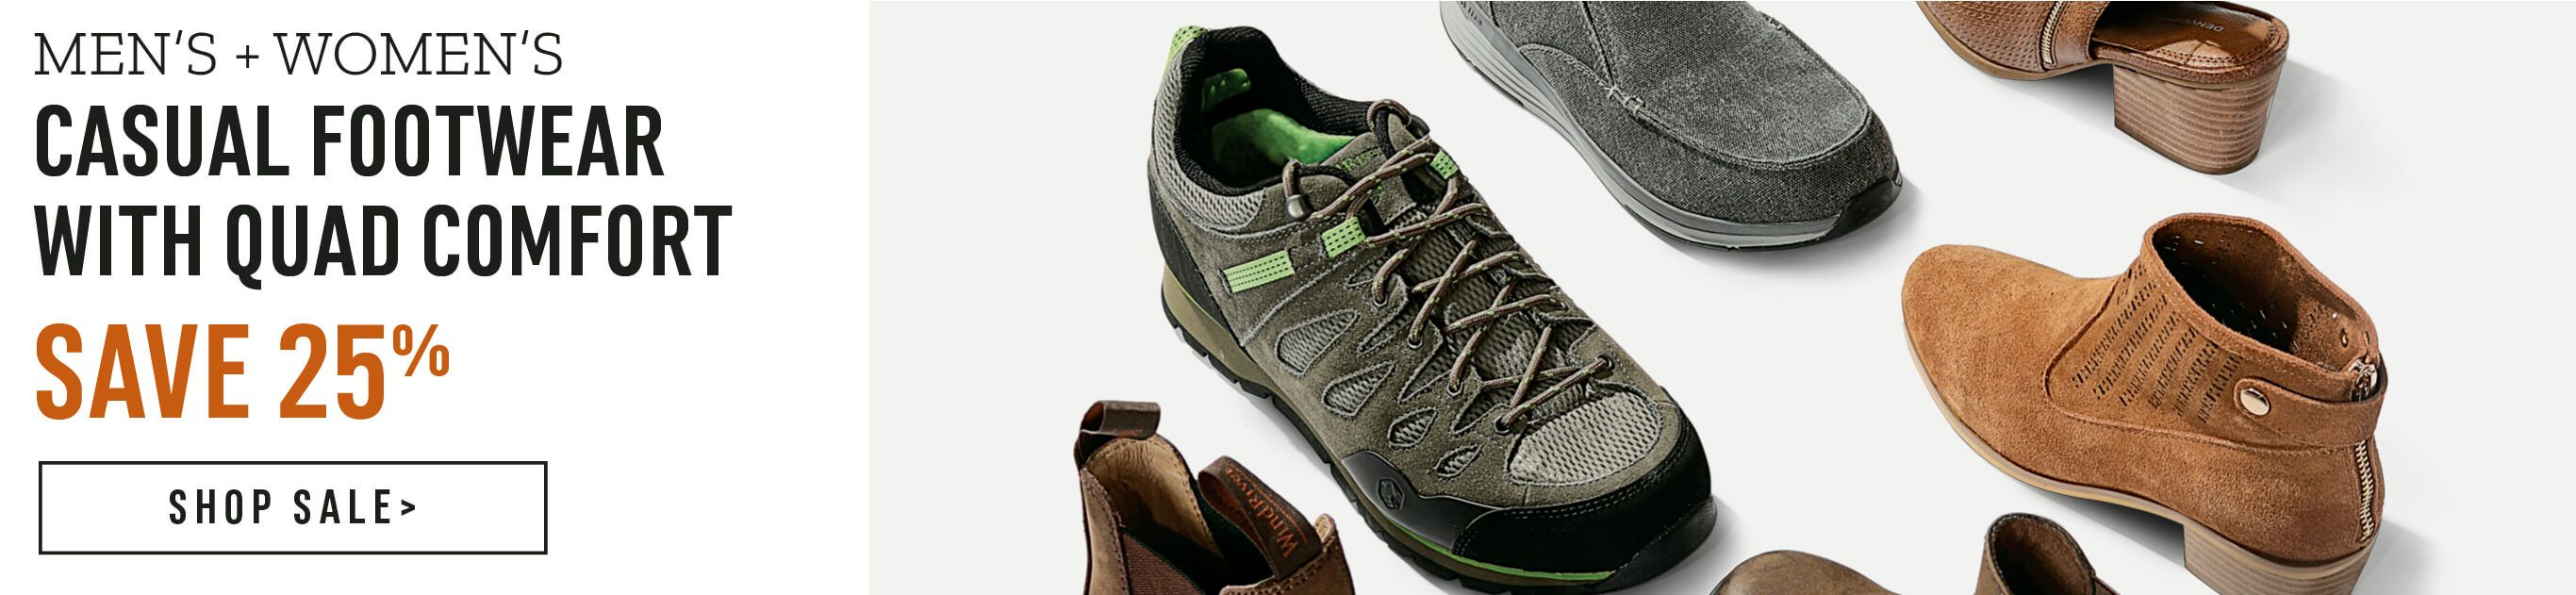 Men's and women's casual footwear with quad comfort - Save 25% - Shop Sale